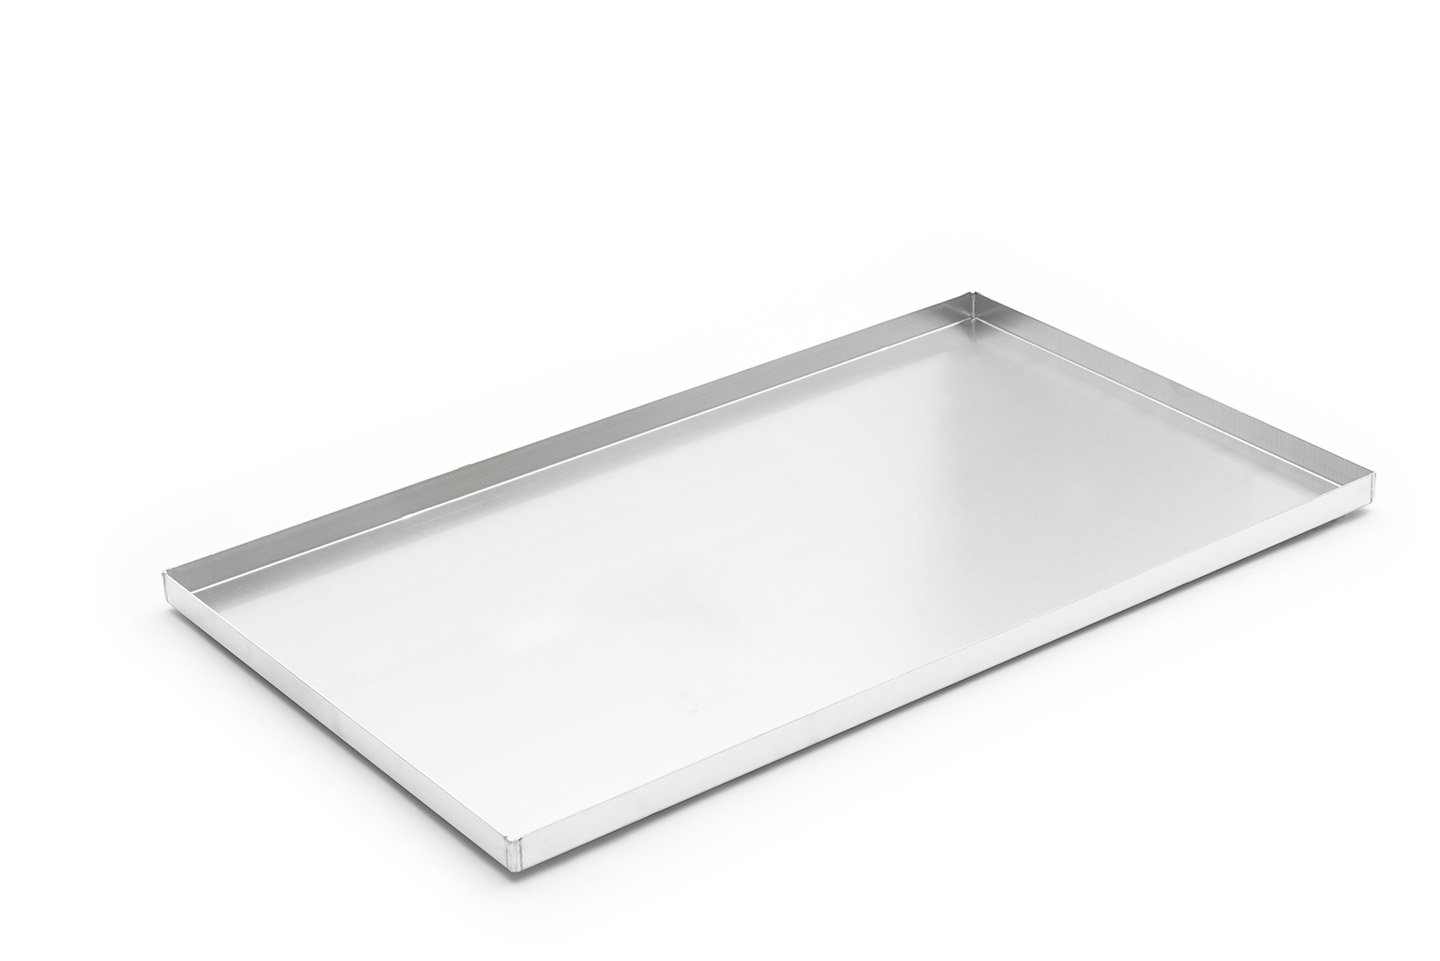 4-sided Plain Baking Tray – AMERICOAT® Coating